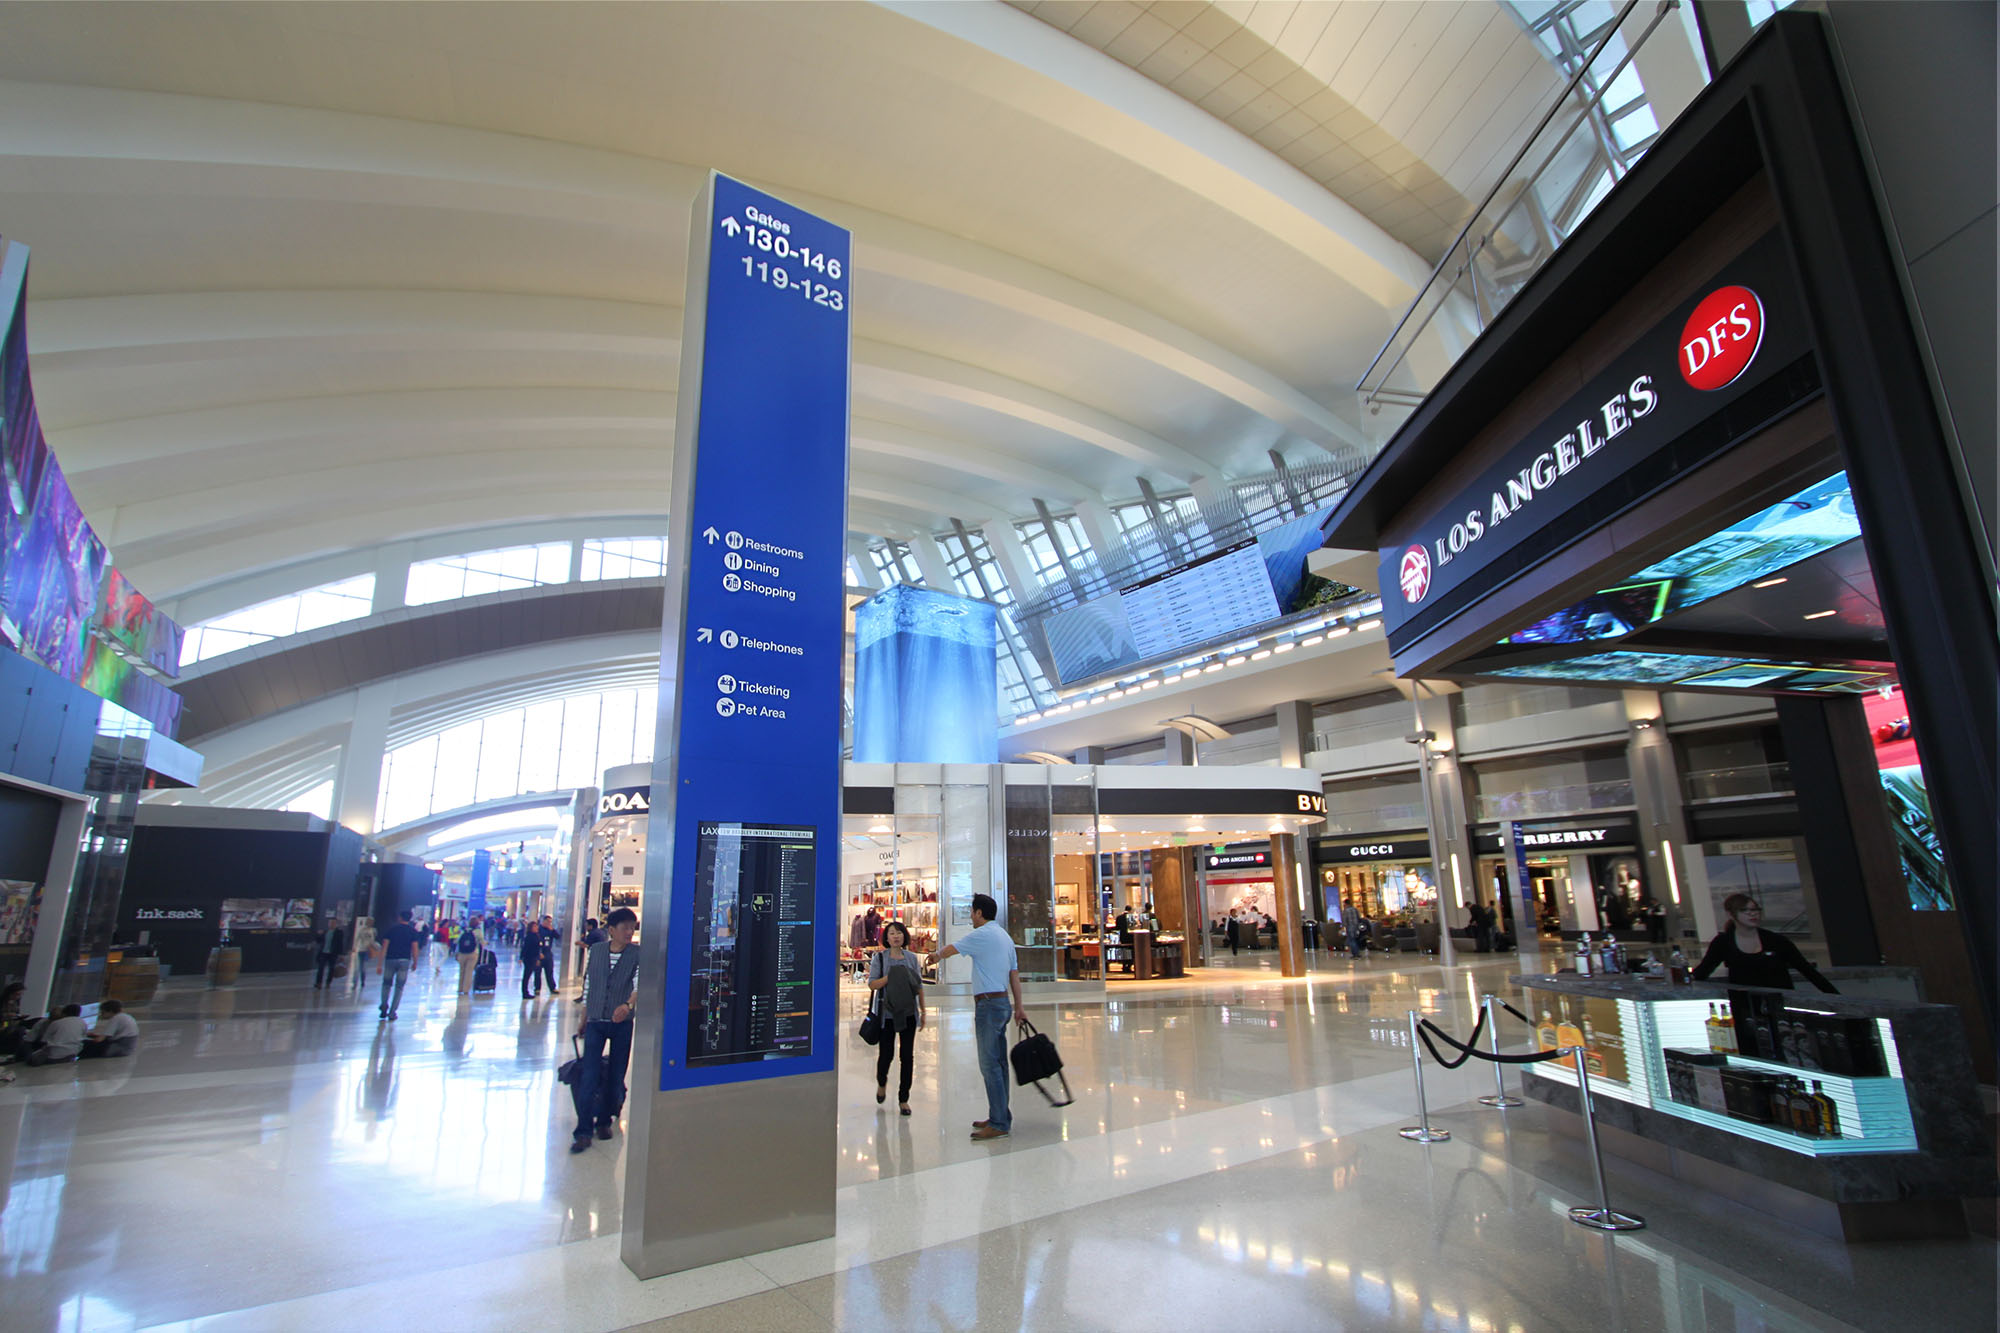 Inside Tom Bradley International Terminal showing travelers and shops